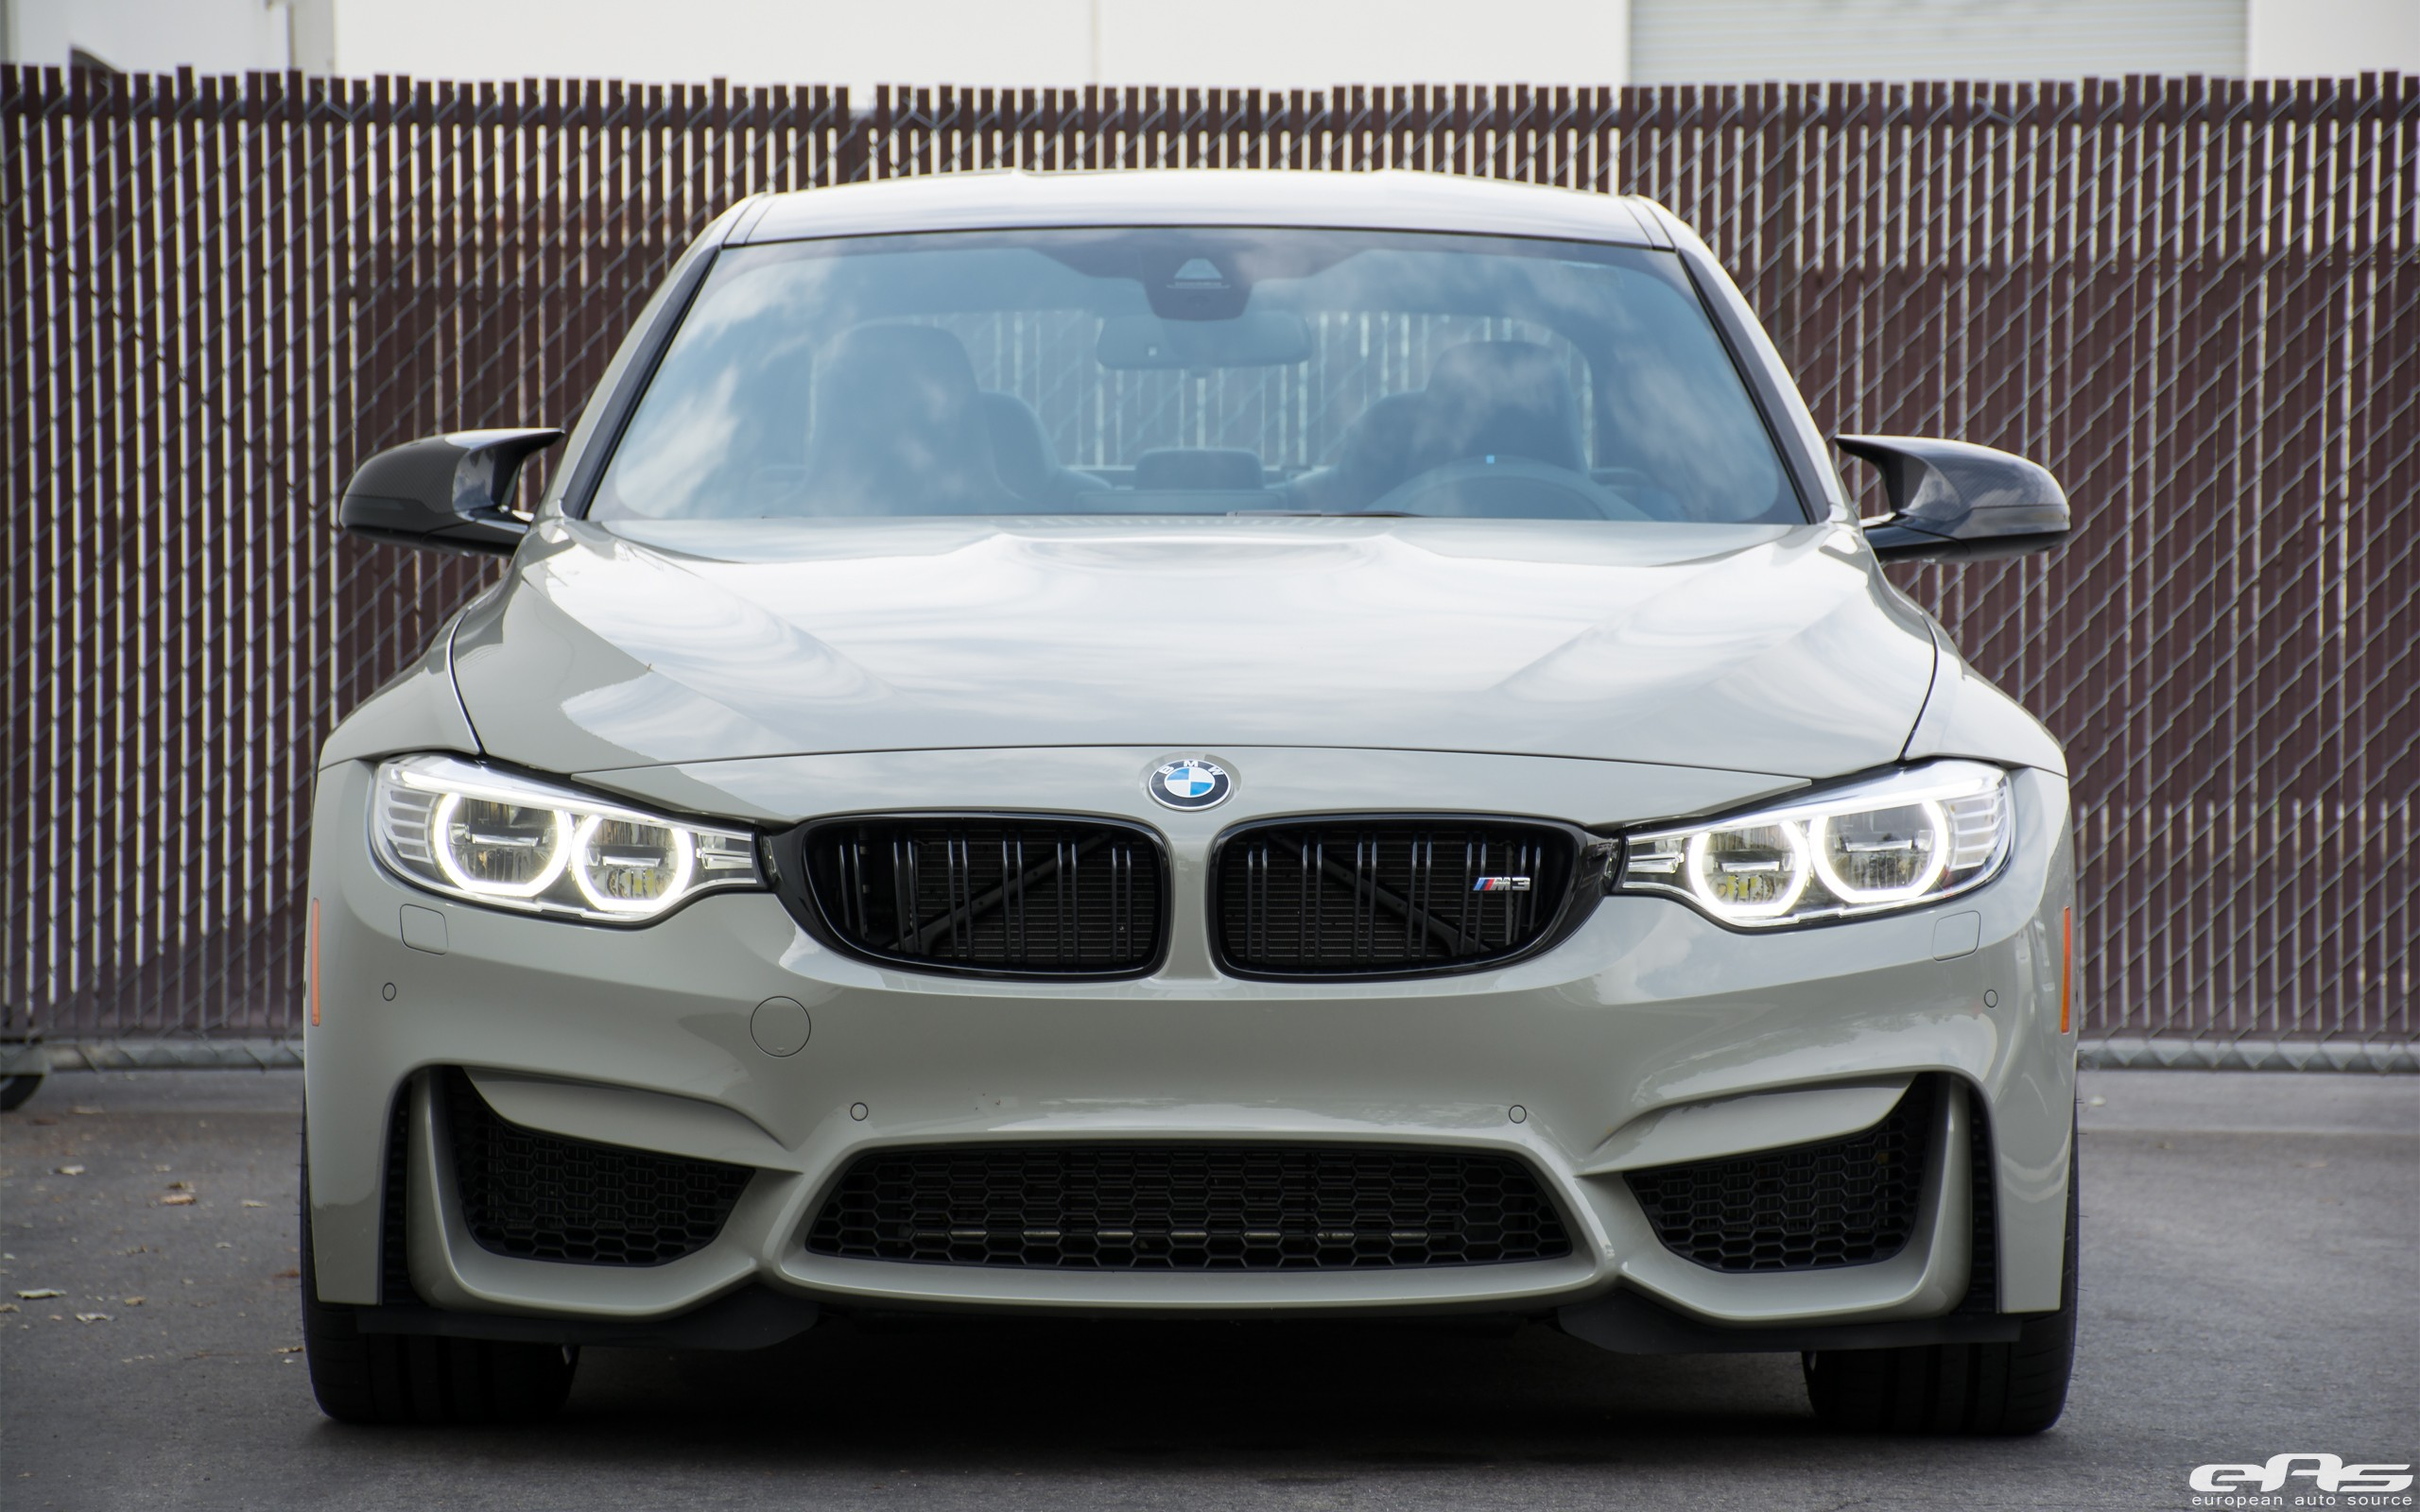 Bmw M3 E30 >> Fashion Grey BMW F80 M3 Has a Fjord Blue Interior and It's Stunning - autoevolution